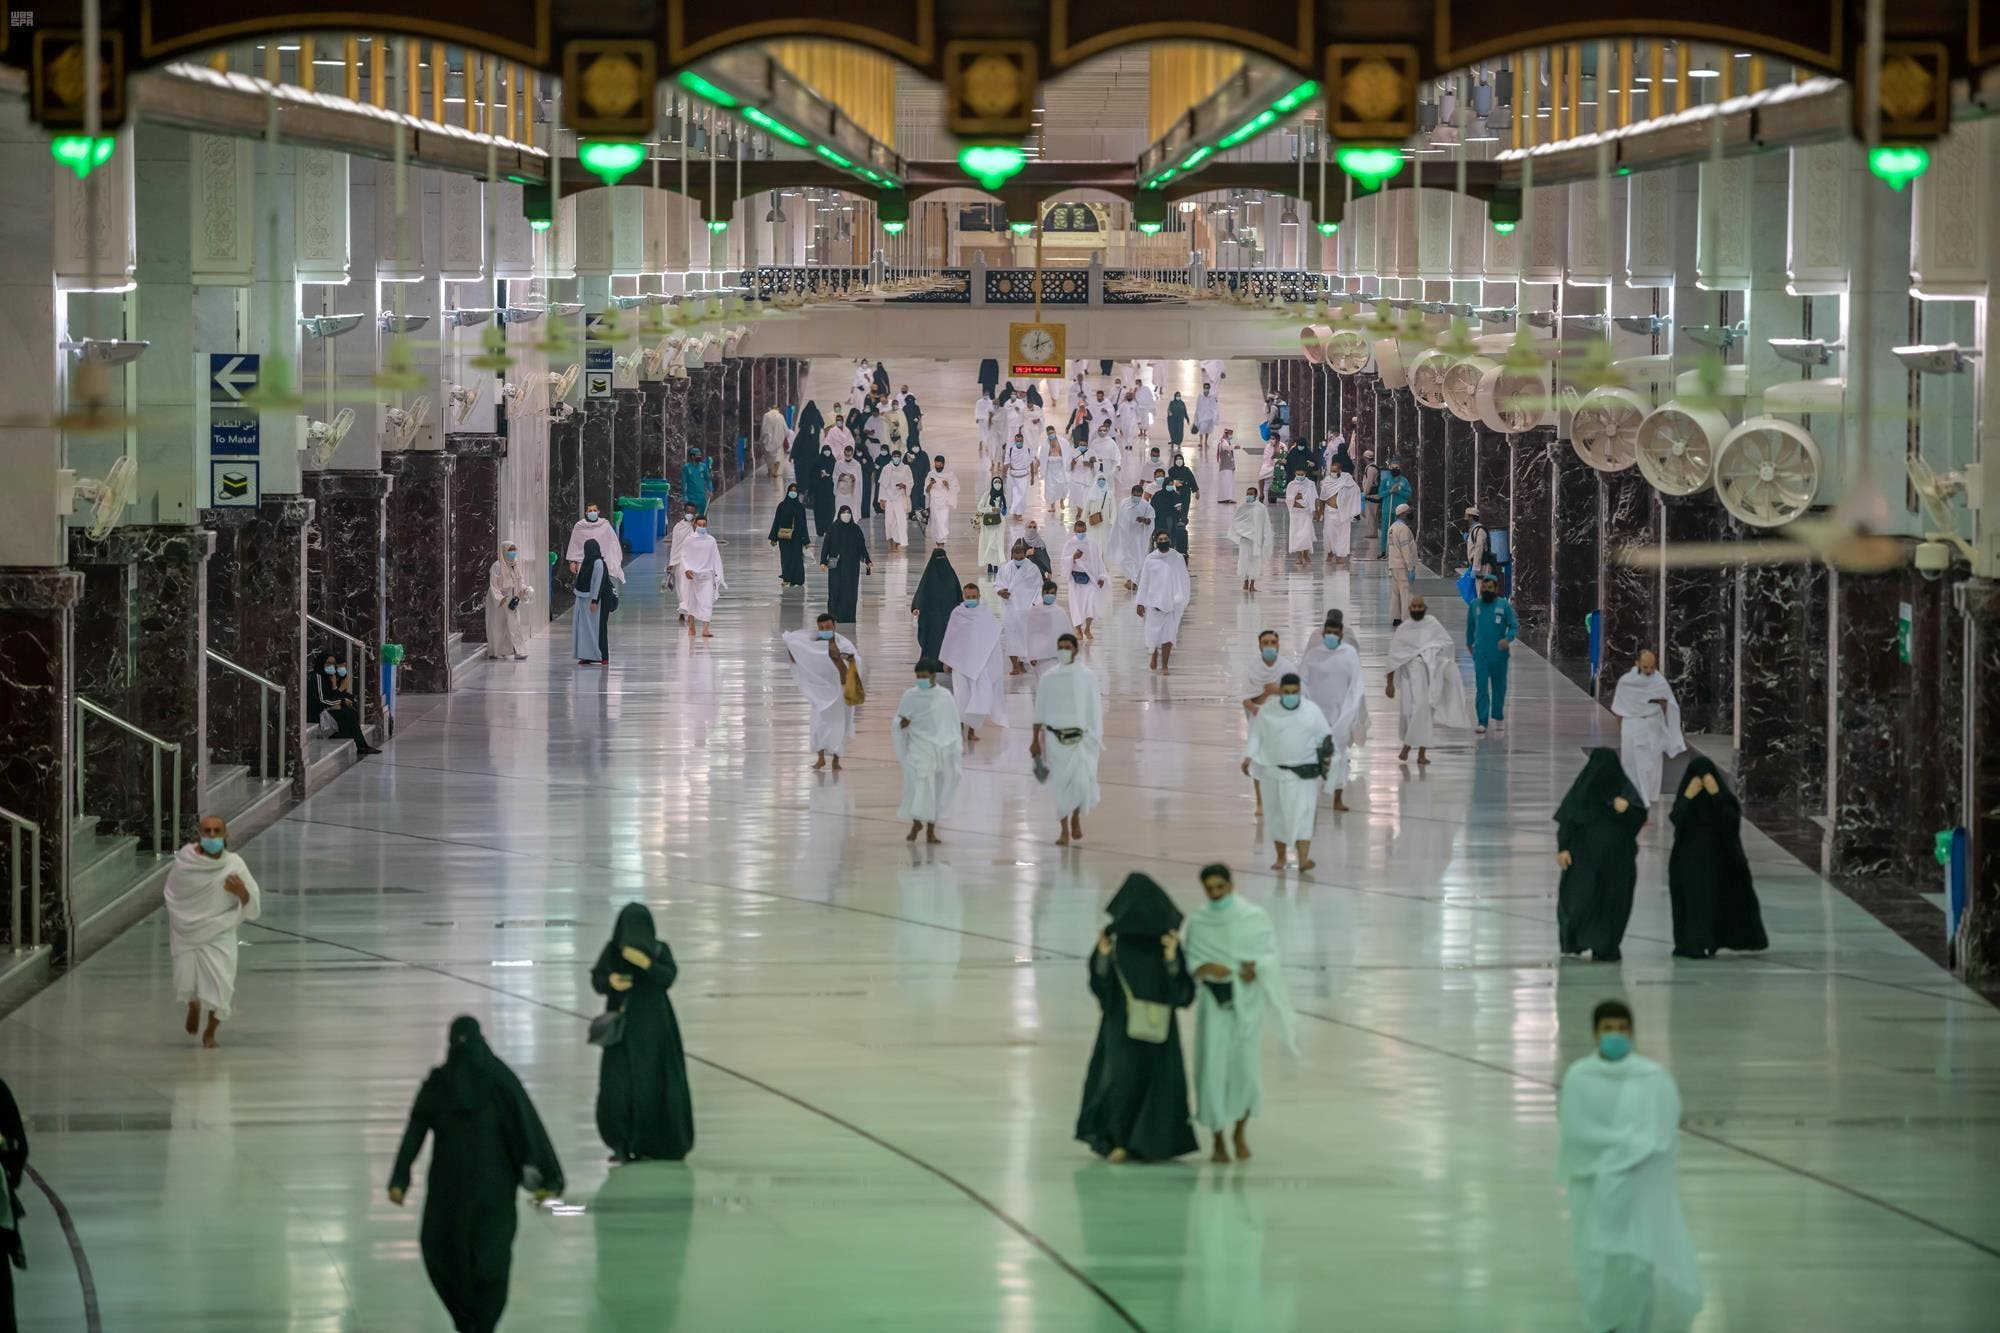 Muslims perform Umrah at the Grand Mosque after Saudi authorities eased the coronavirus disease (COVID-19) restrictions, in the holy city of Mecca. (Reuters)